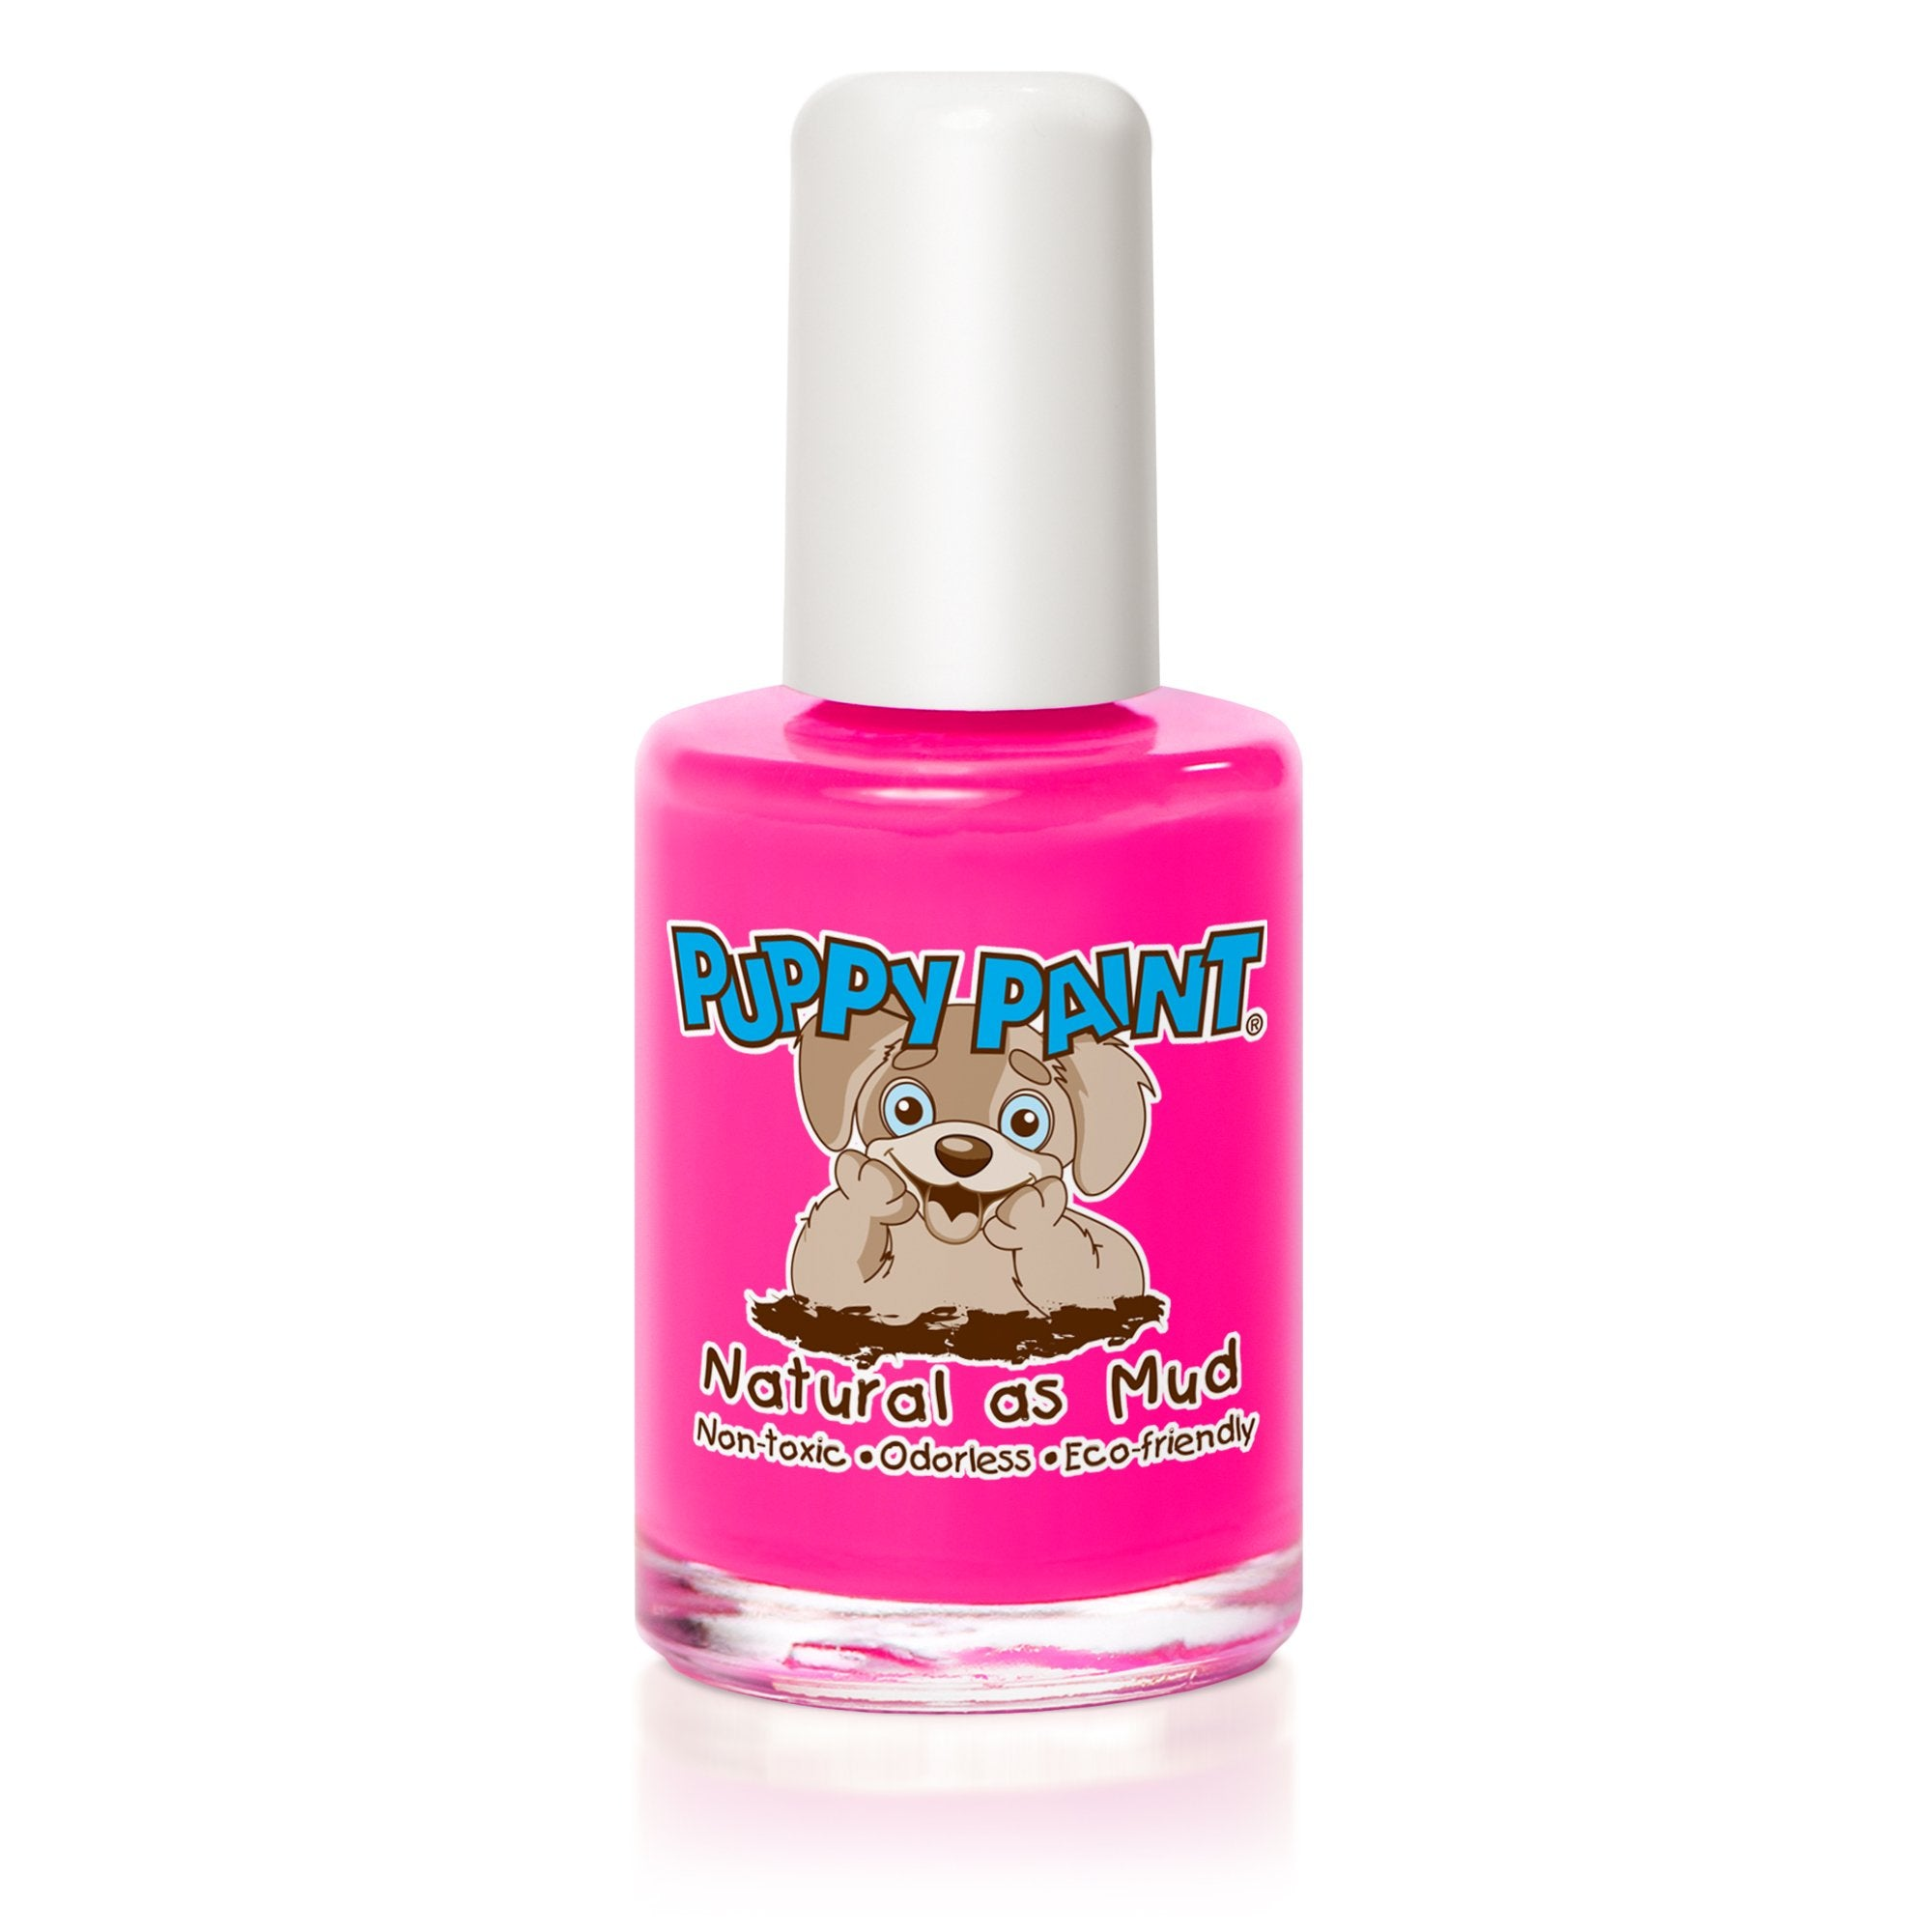 0.5 fl oz pink puppy paint nail polish bottle with white lid